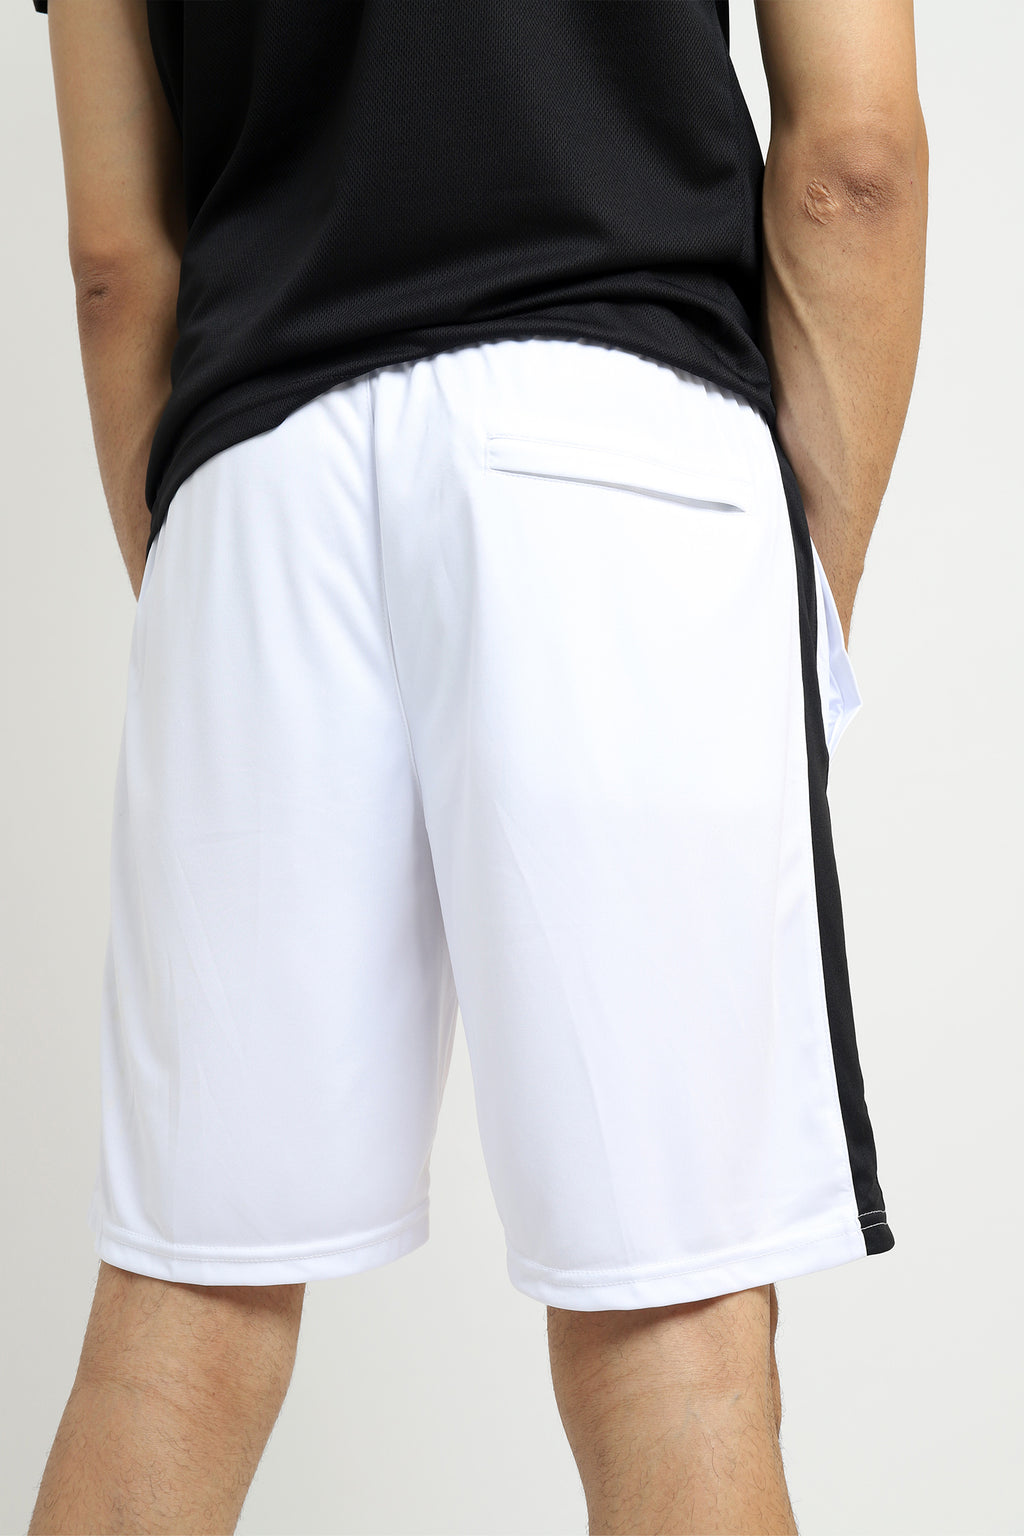 ALMASFIT CONTRAST SHORTS -WHITE/BLACK